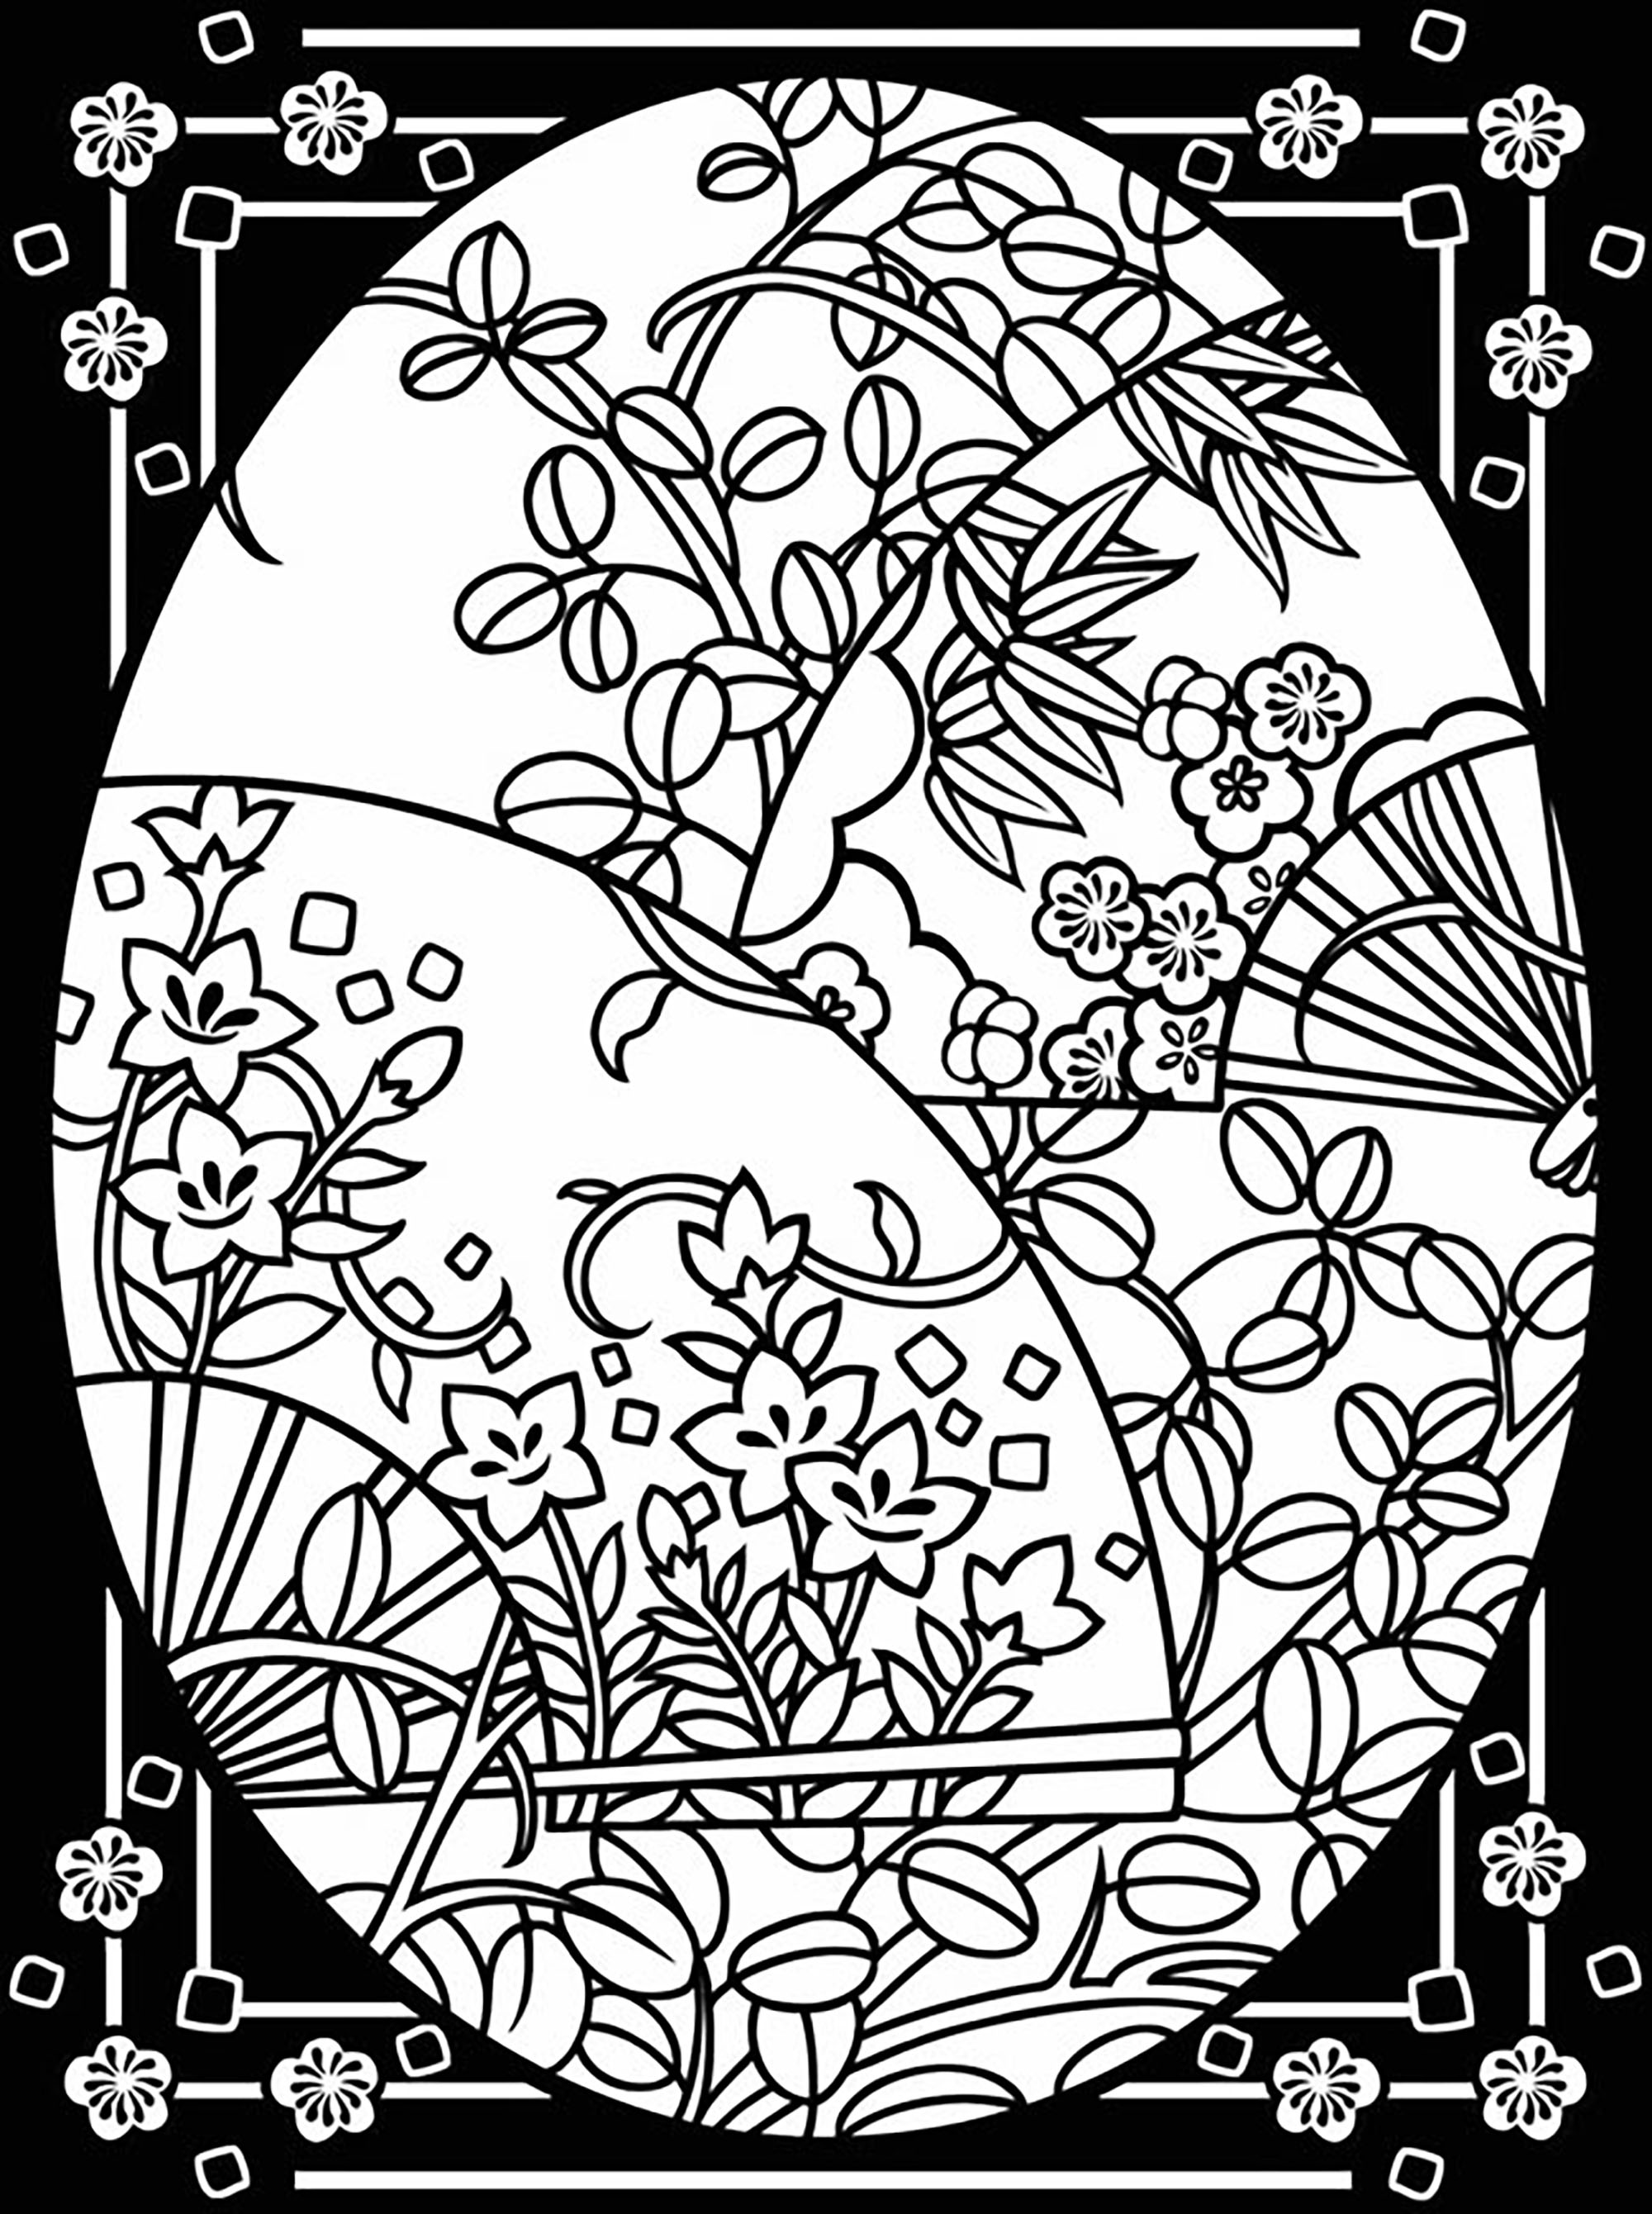 Easter egg with beautiful flowers and leaves, and large border